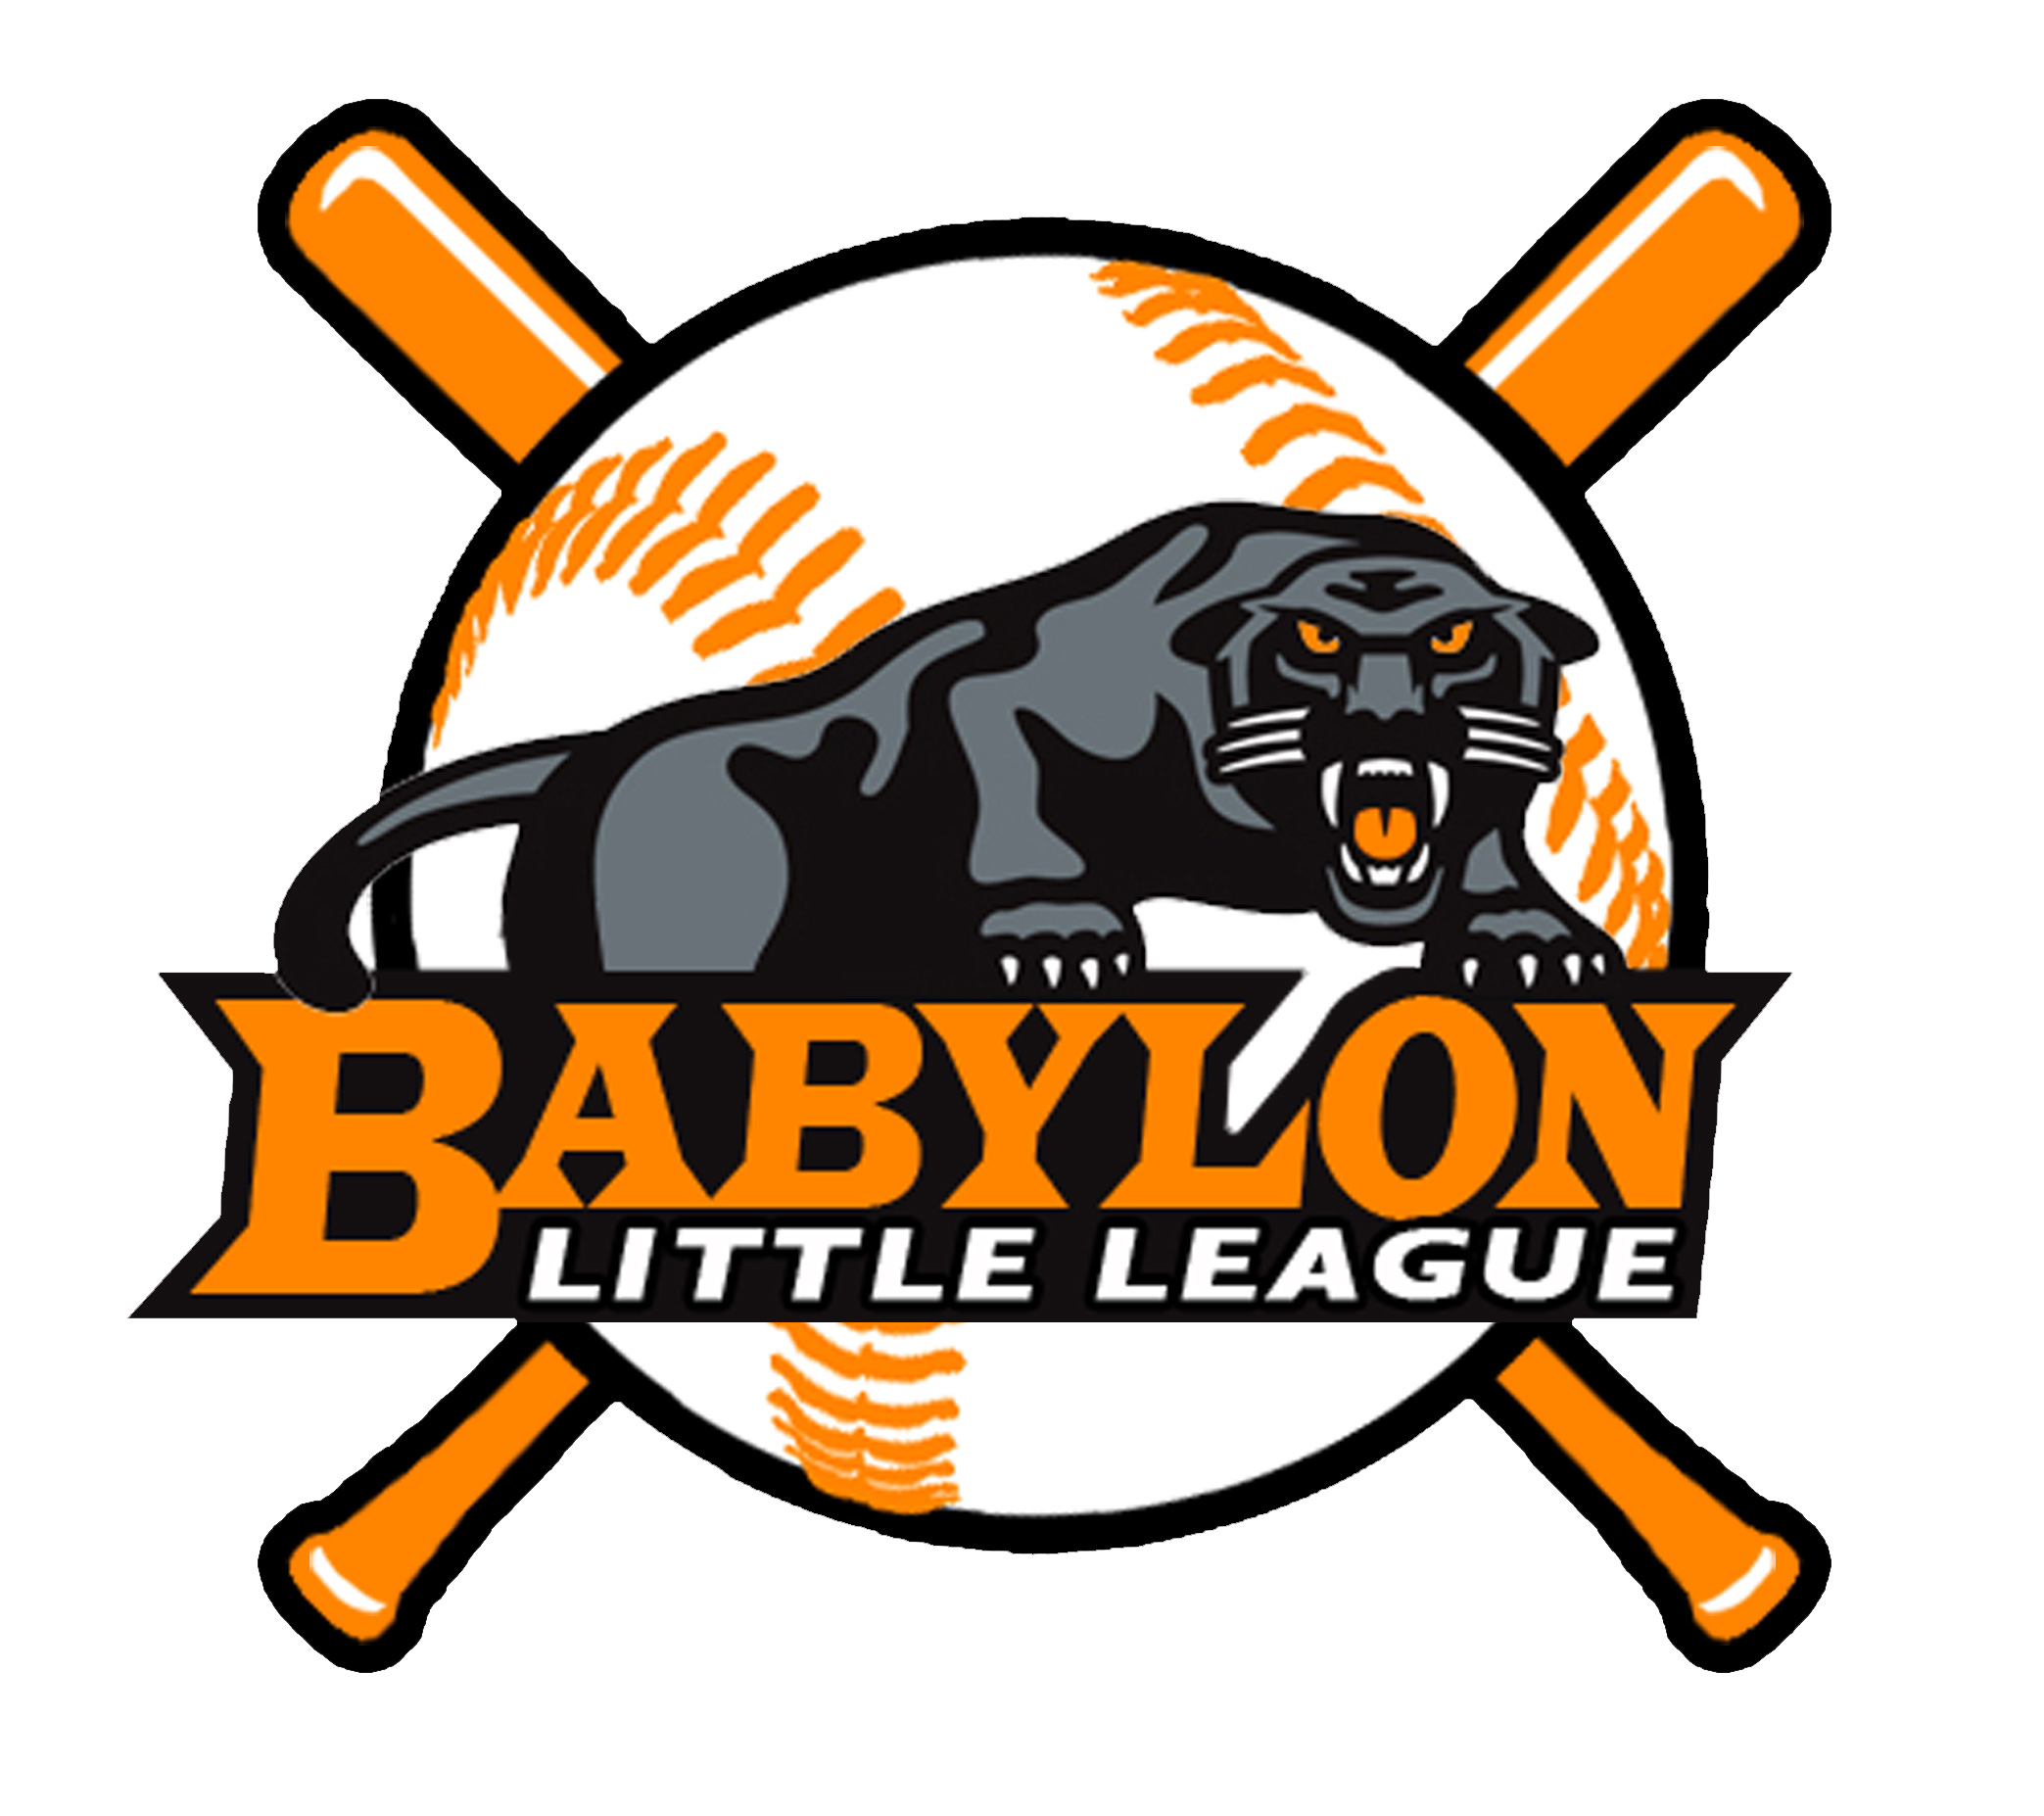 Babylon Little League